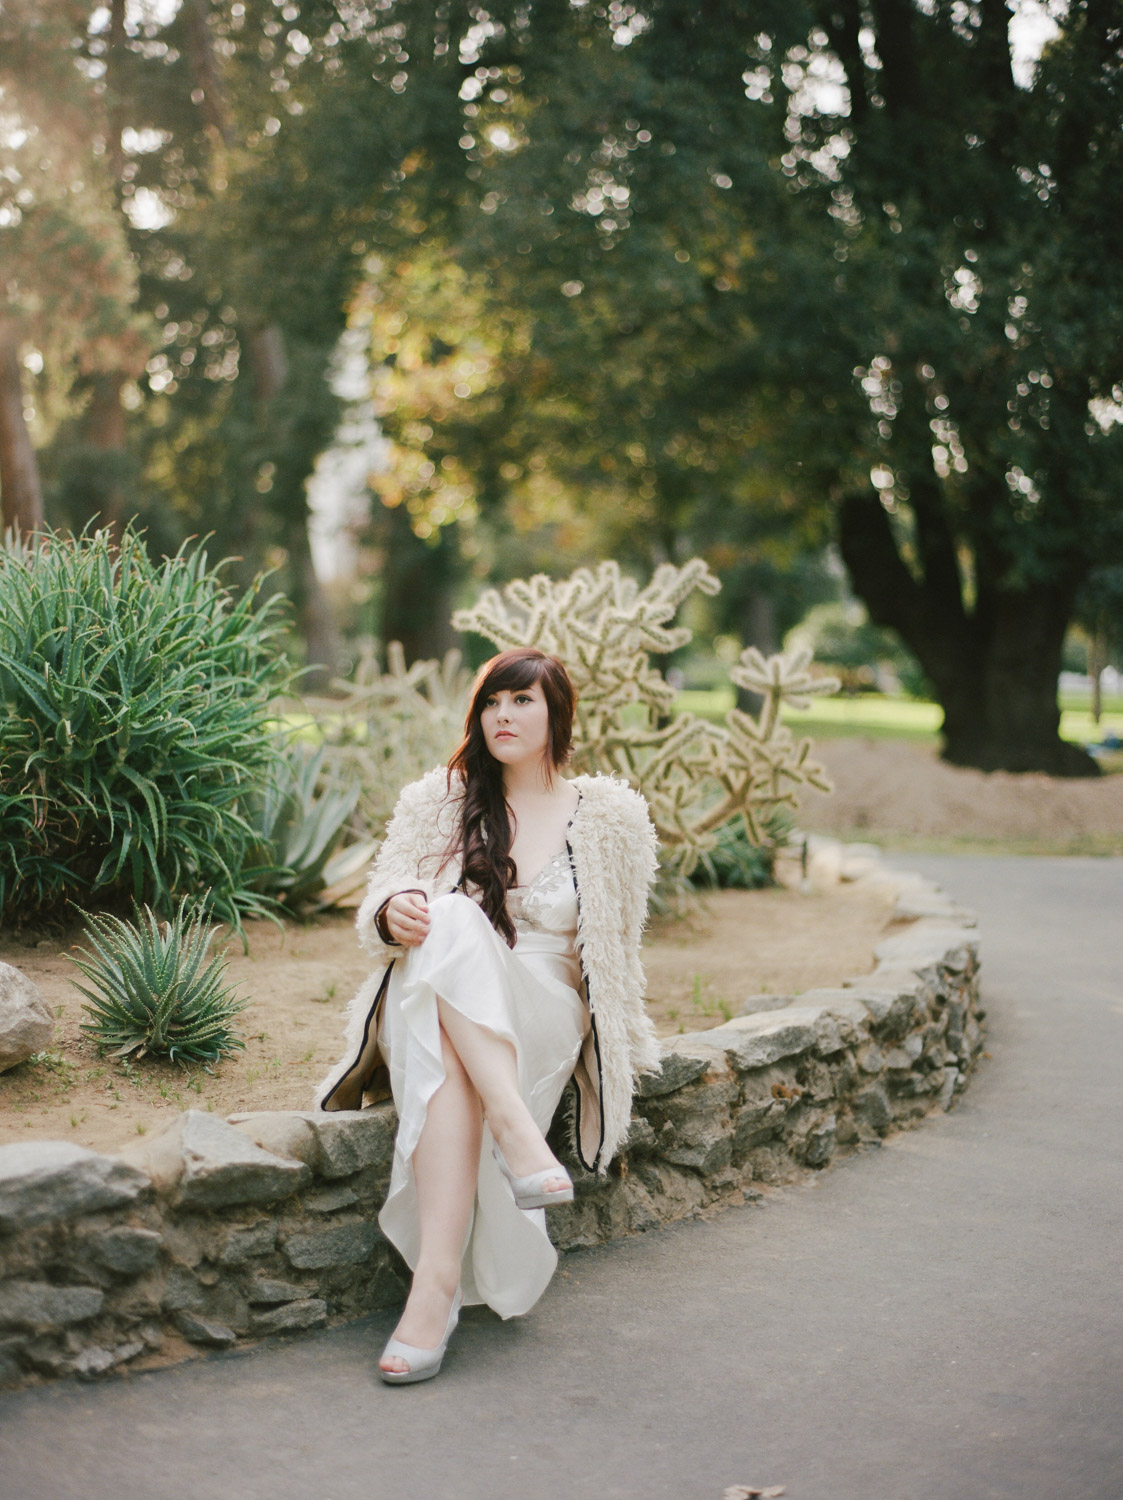 Film photography by Rachel Sima Photography